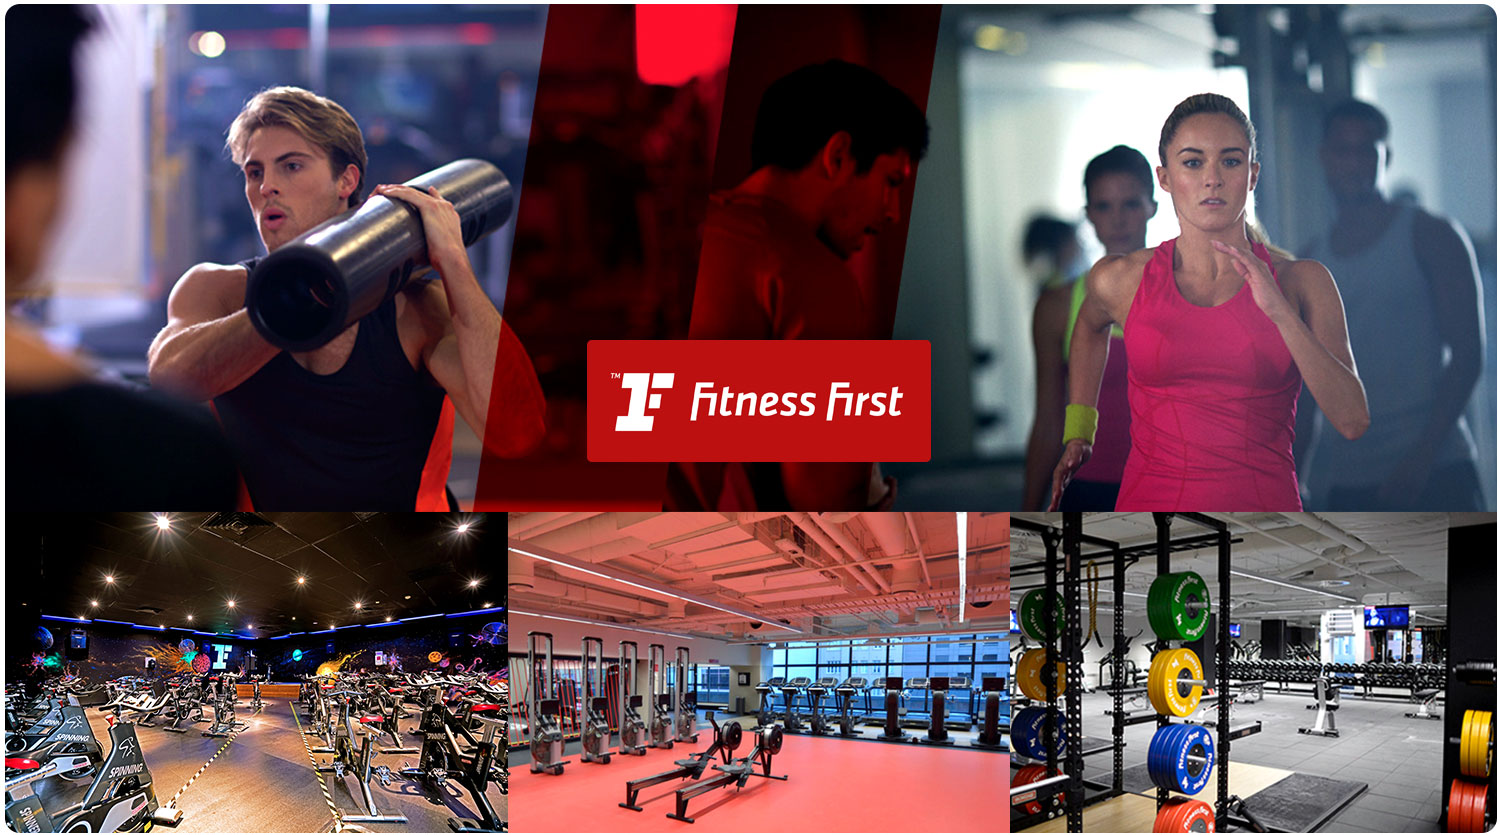 Start your Fitness Journey with Fitness First with only $14.95 for 14 days at Fitness First Hornsby NSW. Experience our first class gym and freestyle classes inc. Zumba, Pilates, Yoga, HIIT, Les Mills and more. Take the first step with Fitness First Hornsby NSW.